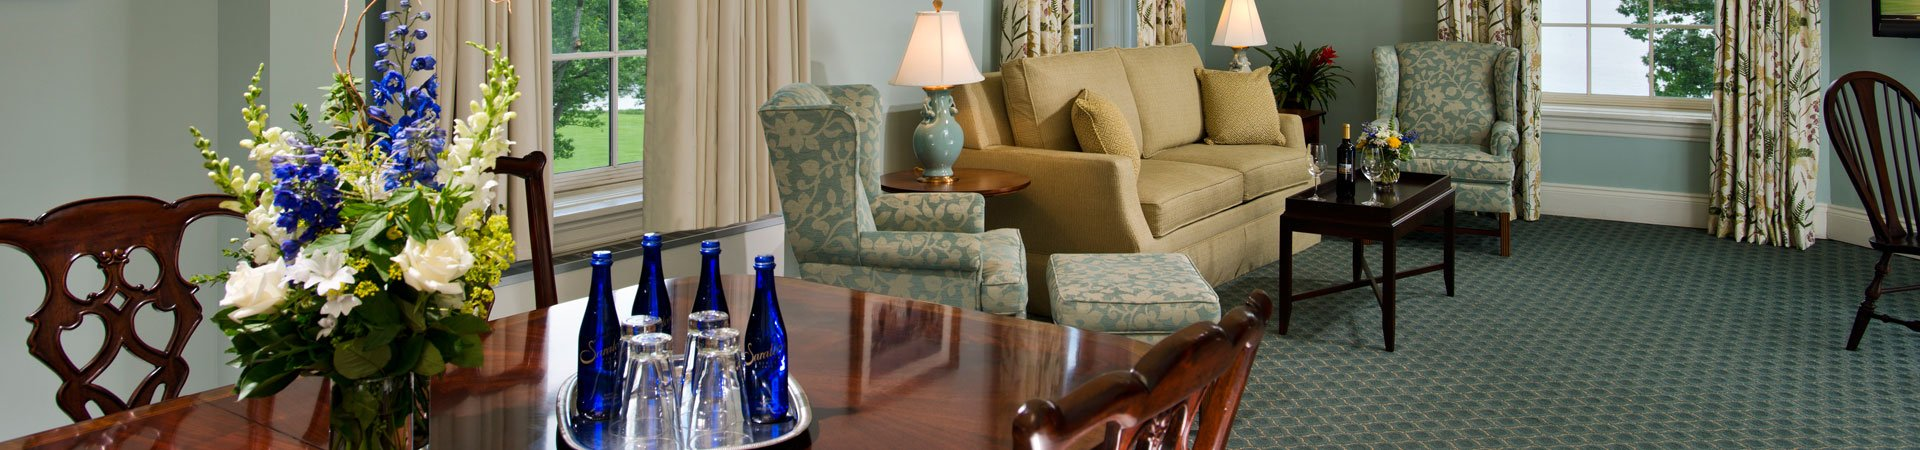 Grand Lake View Suite at The Otesaga Resort Hotel Cooperstown, New York